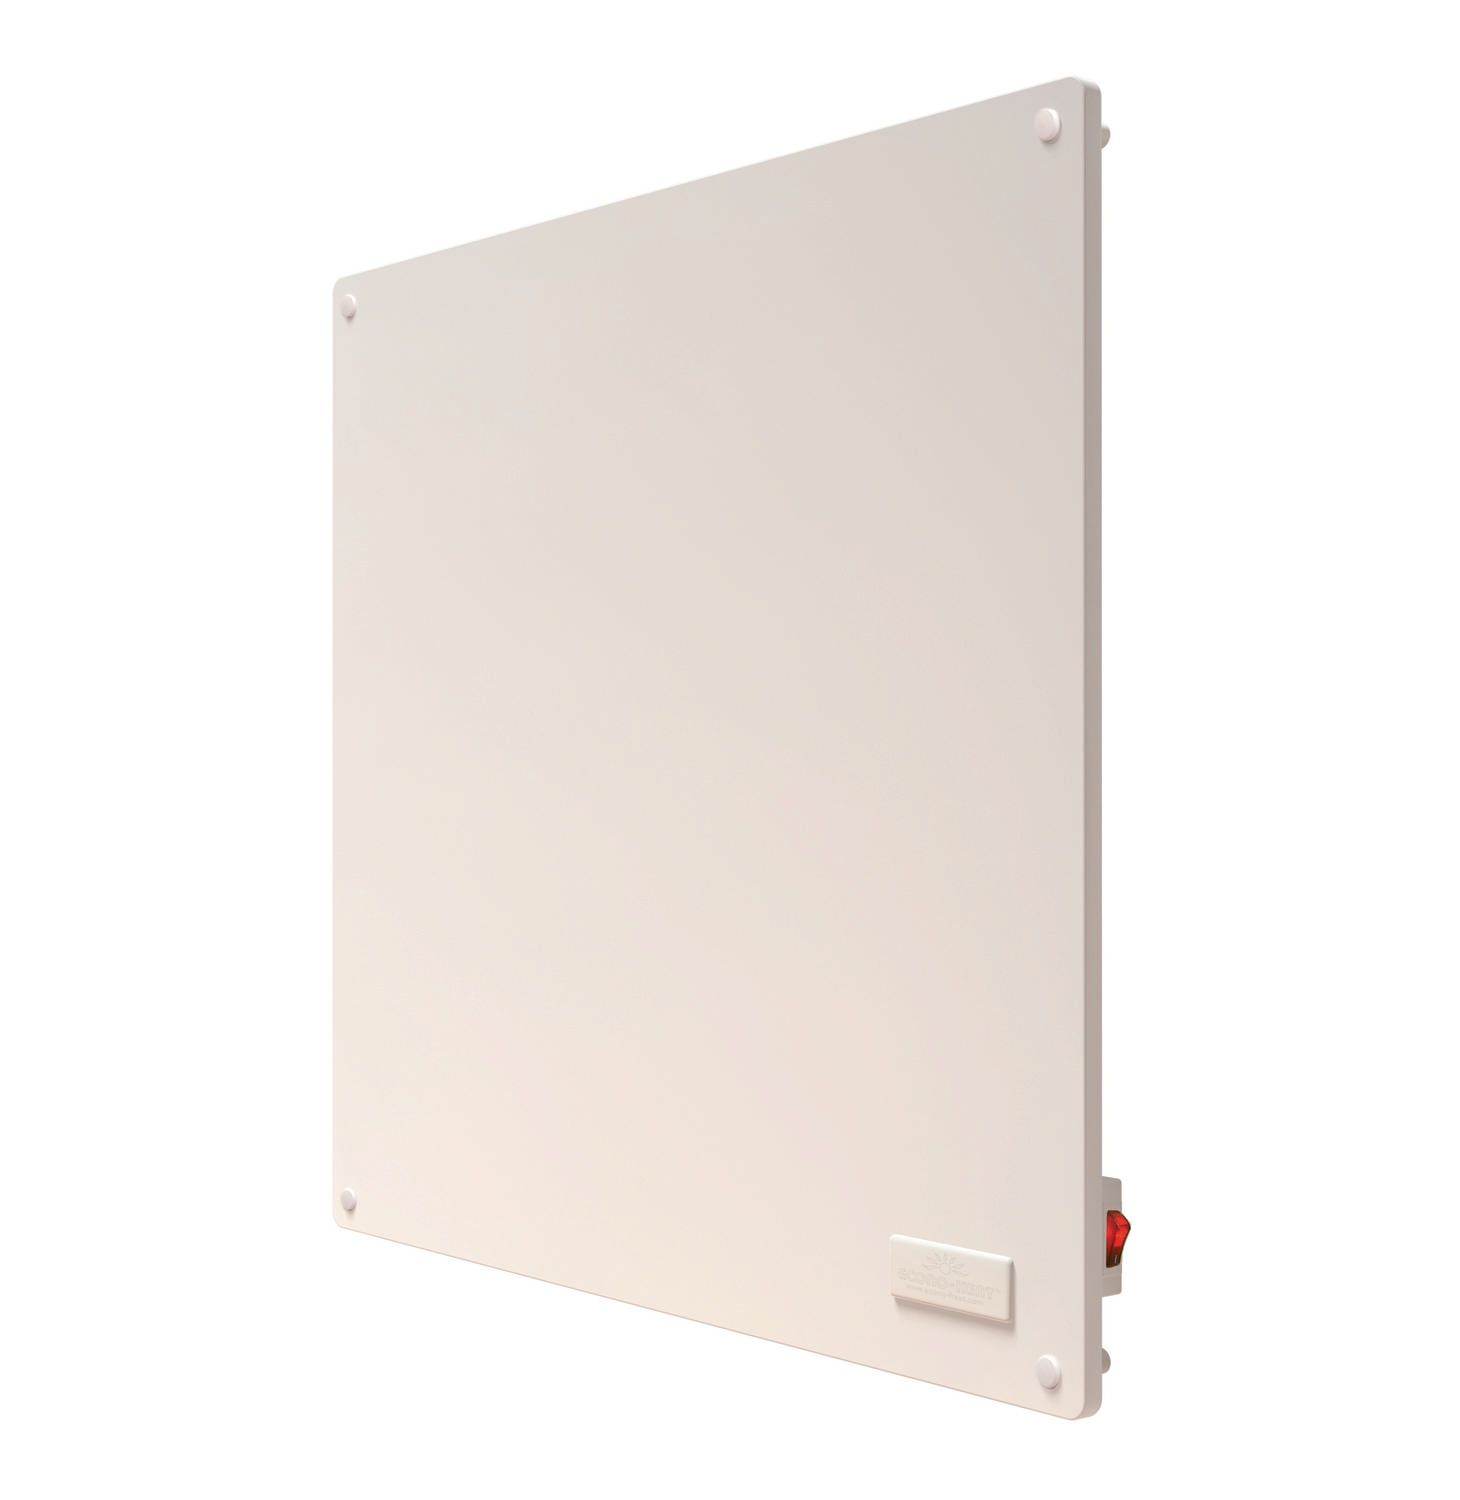 Econo Heat Wall Mount Panel Heater Lowest Prices Amp Specials Online Makro Wall Paneling Bedroom Heater Tiny House Cabin